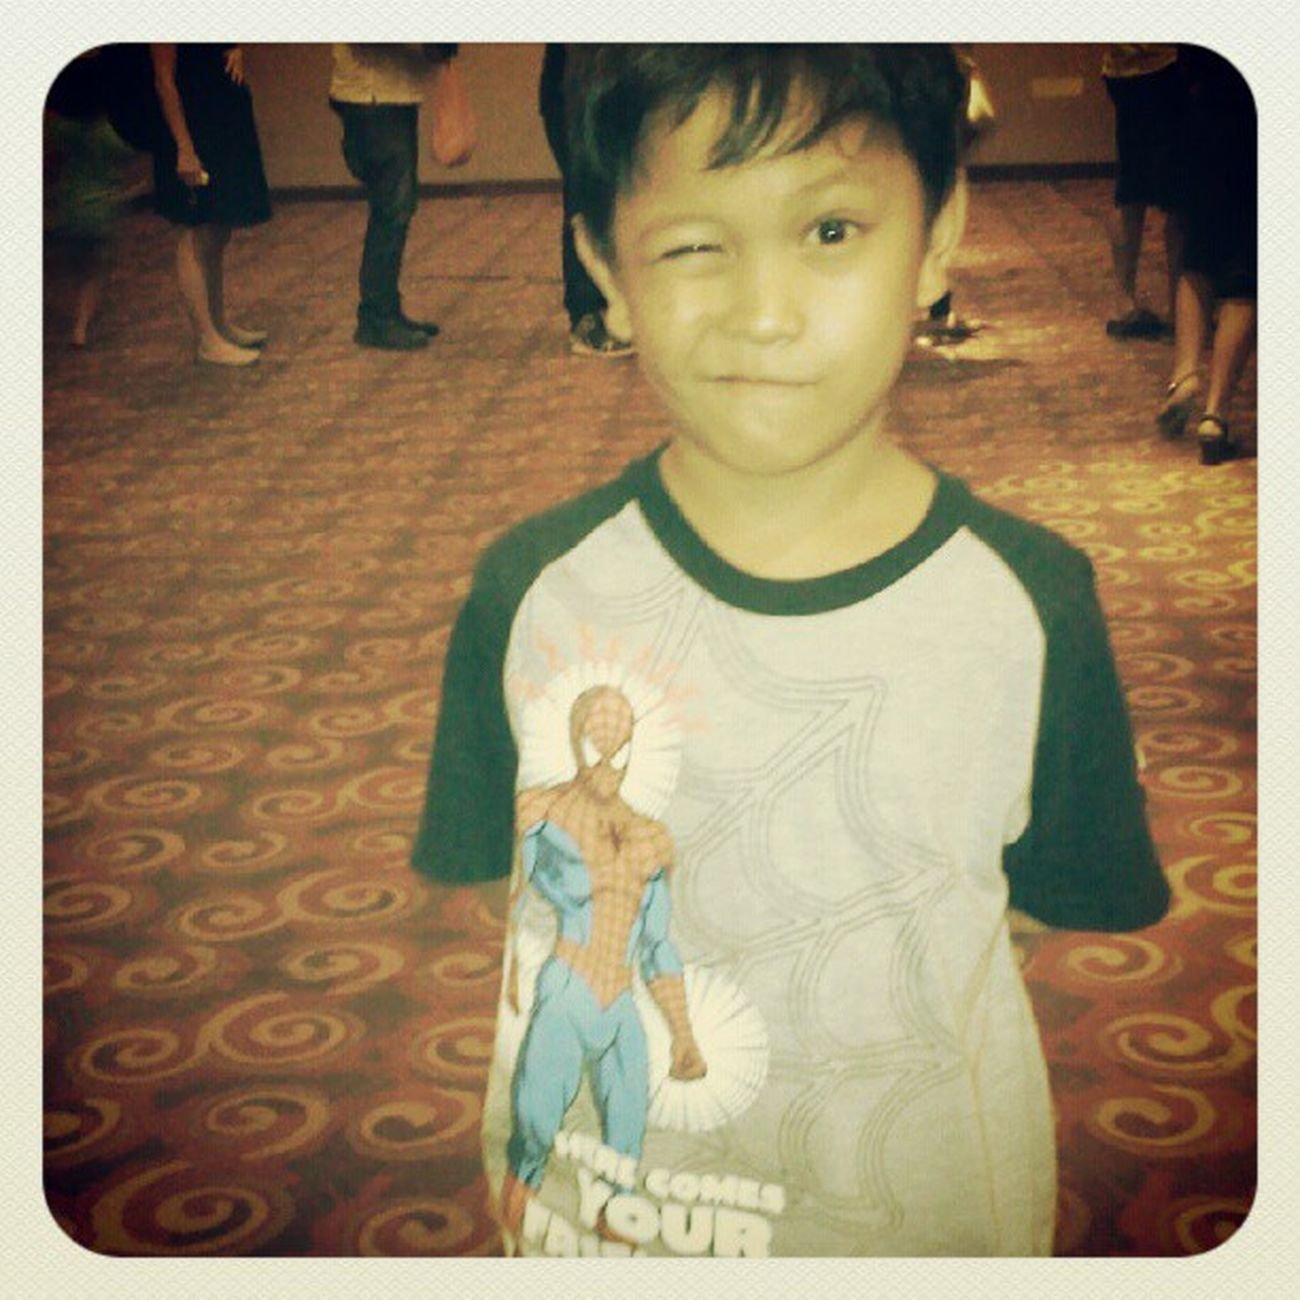 When spiderman watch Batman Darkknightrises Studio21 MANTOS narsis instagram